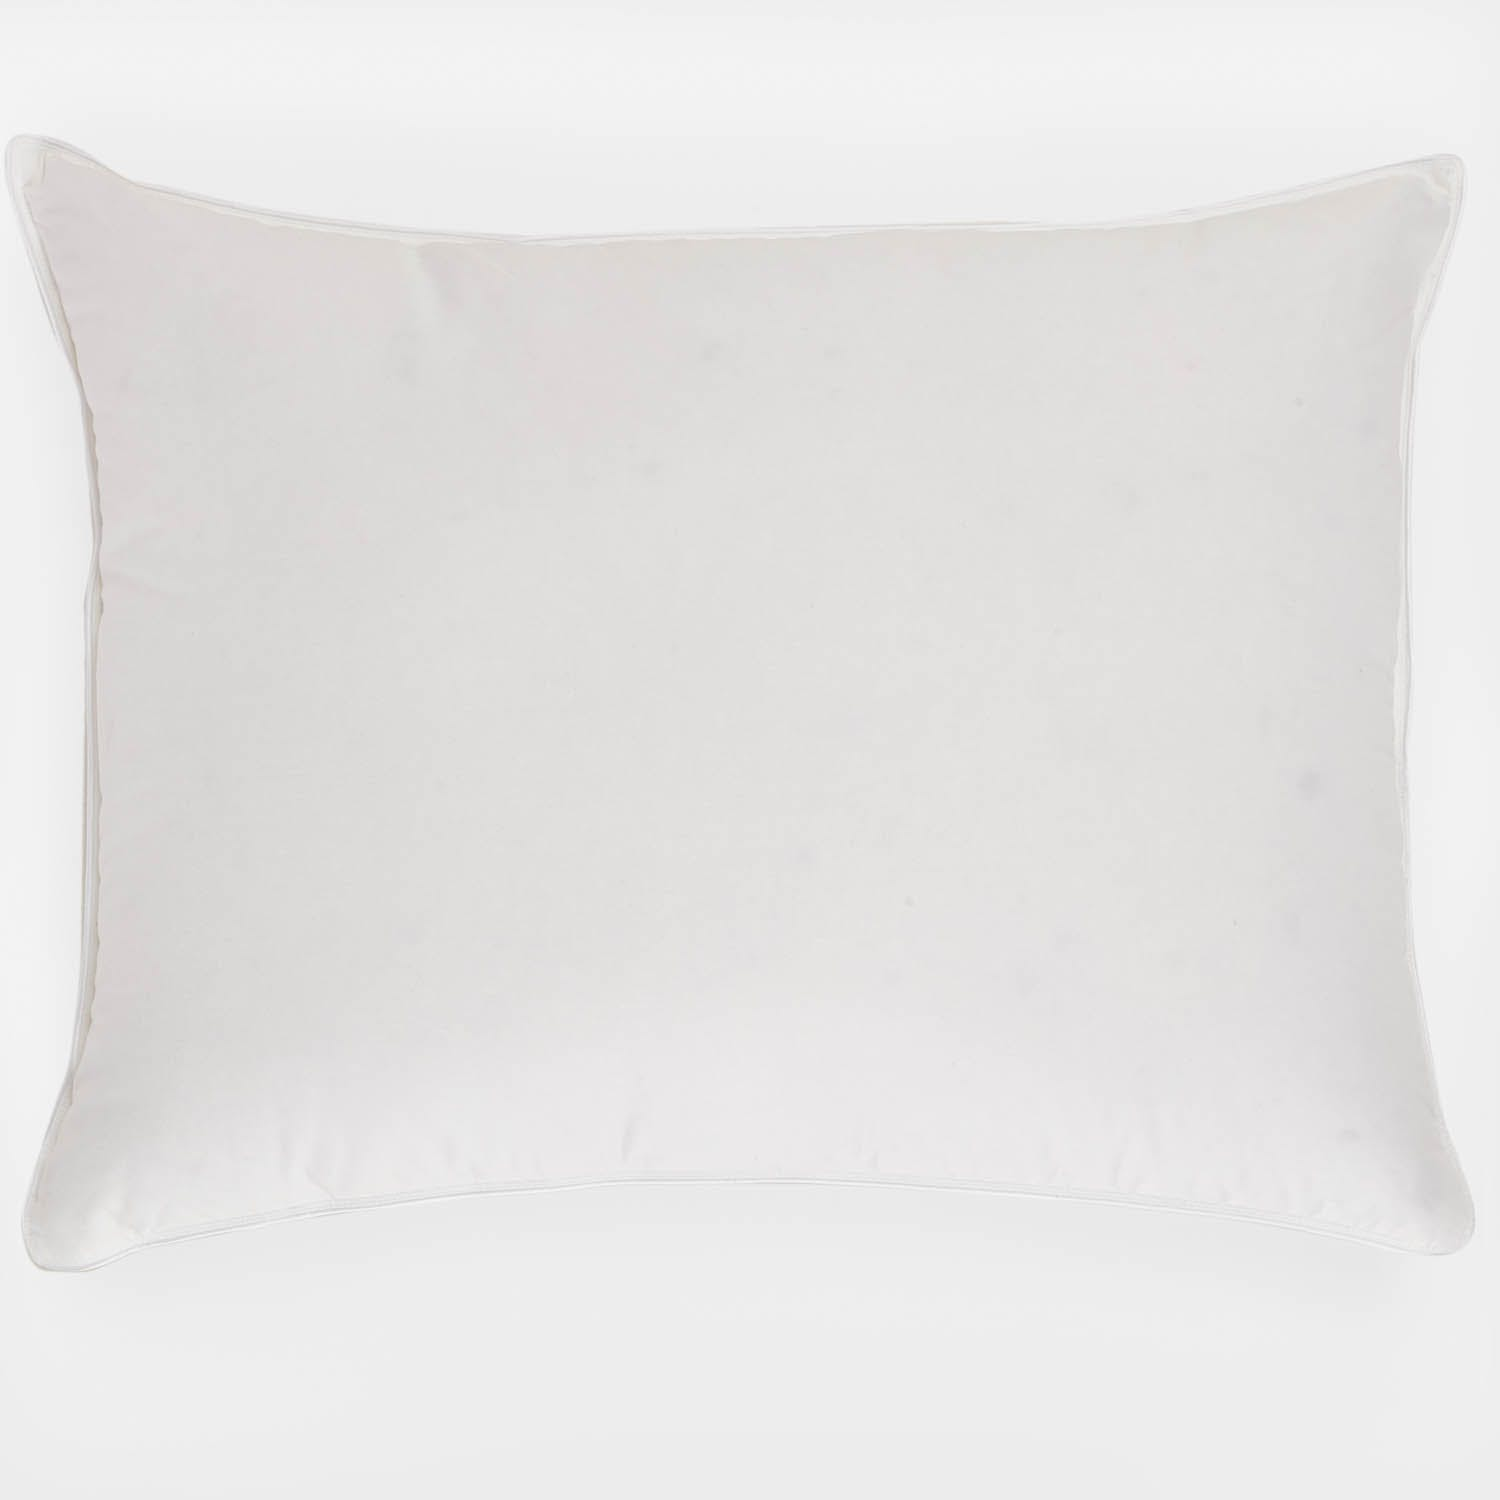 Product Image - Bohemia Soft Pillow